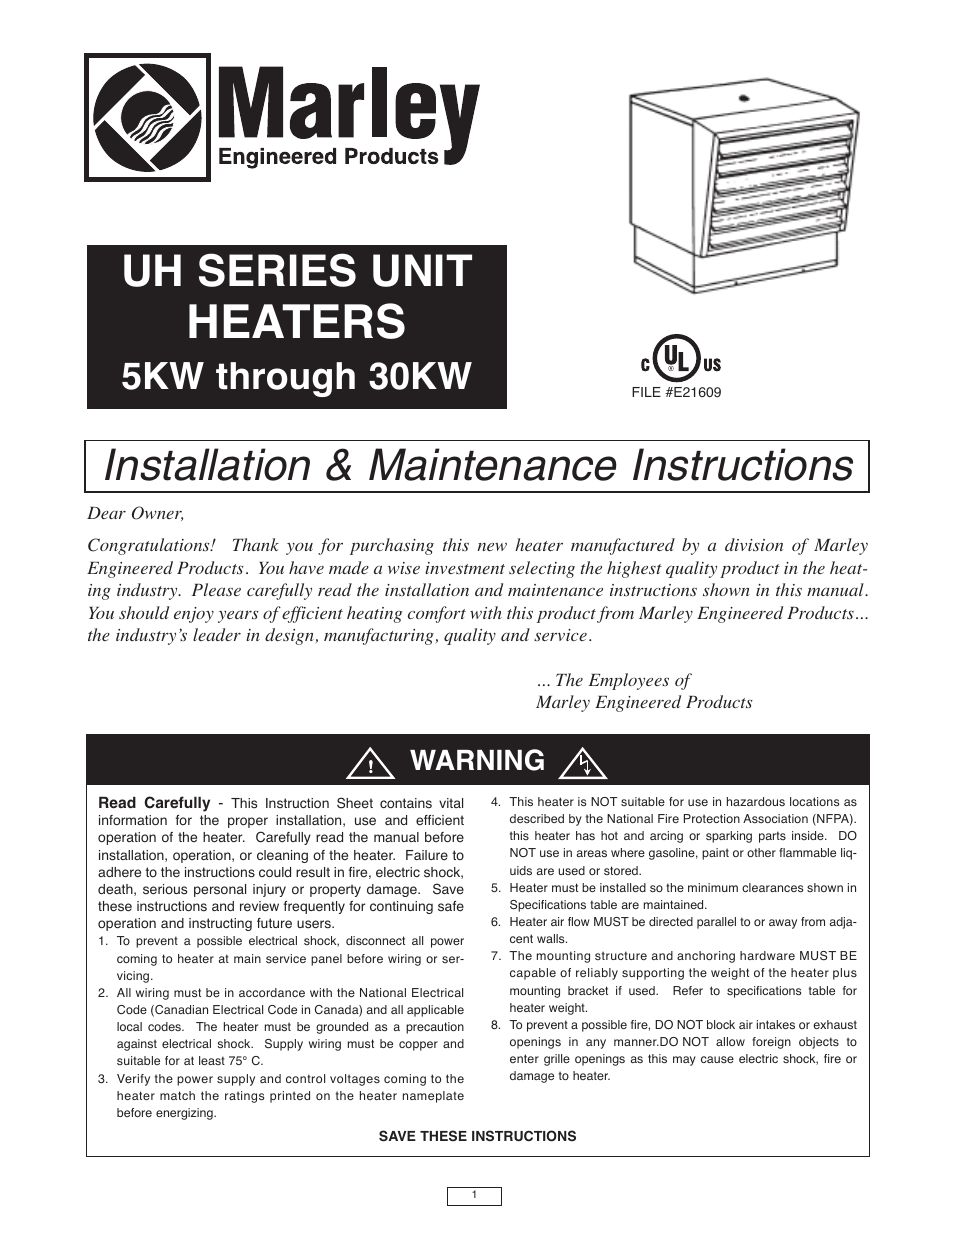 Qmark iuh industrial unit heater user manual 12 pages sciox Image collections